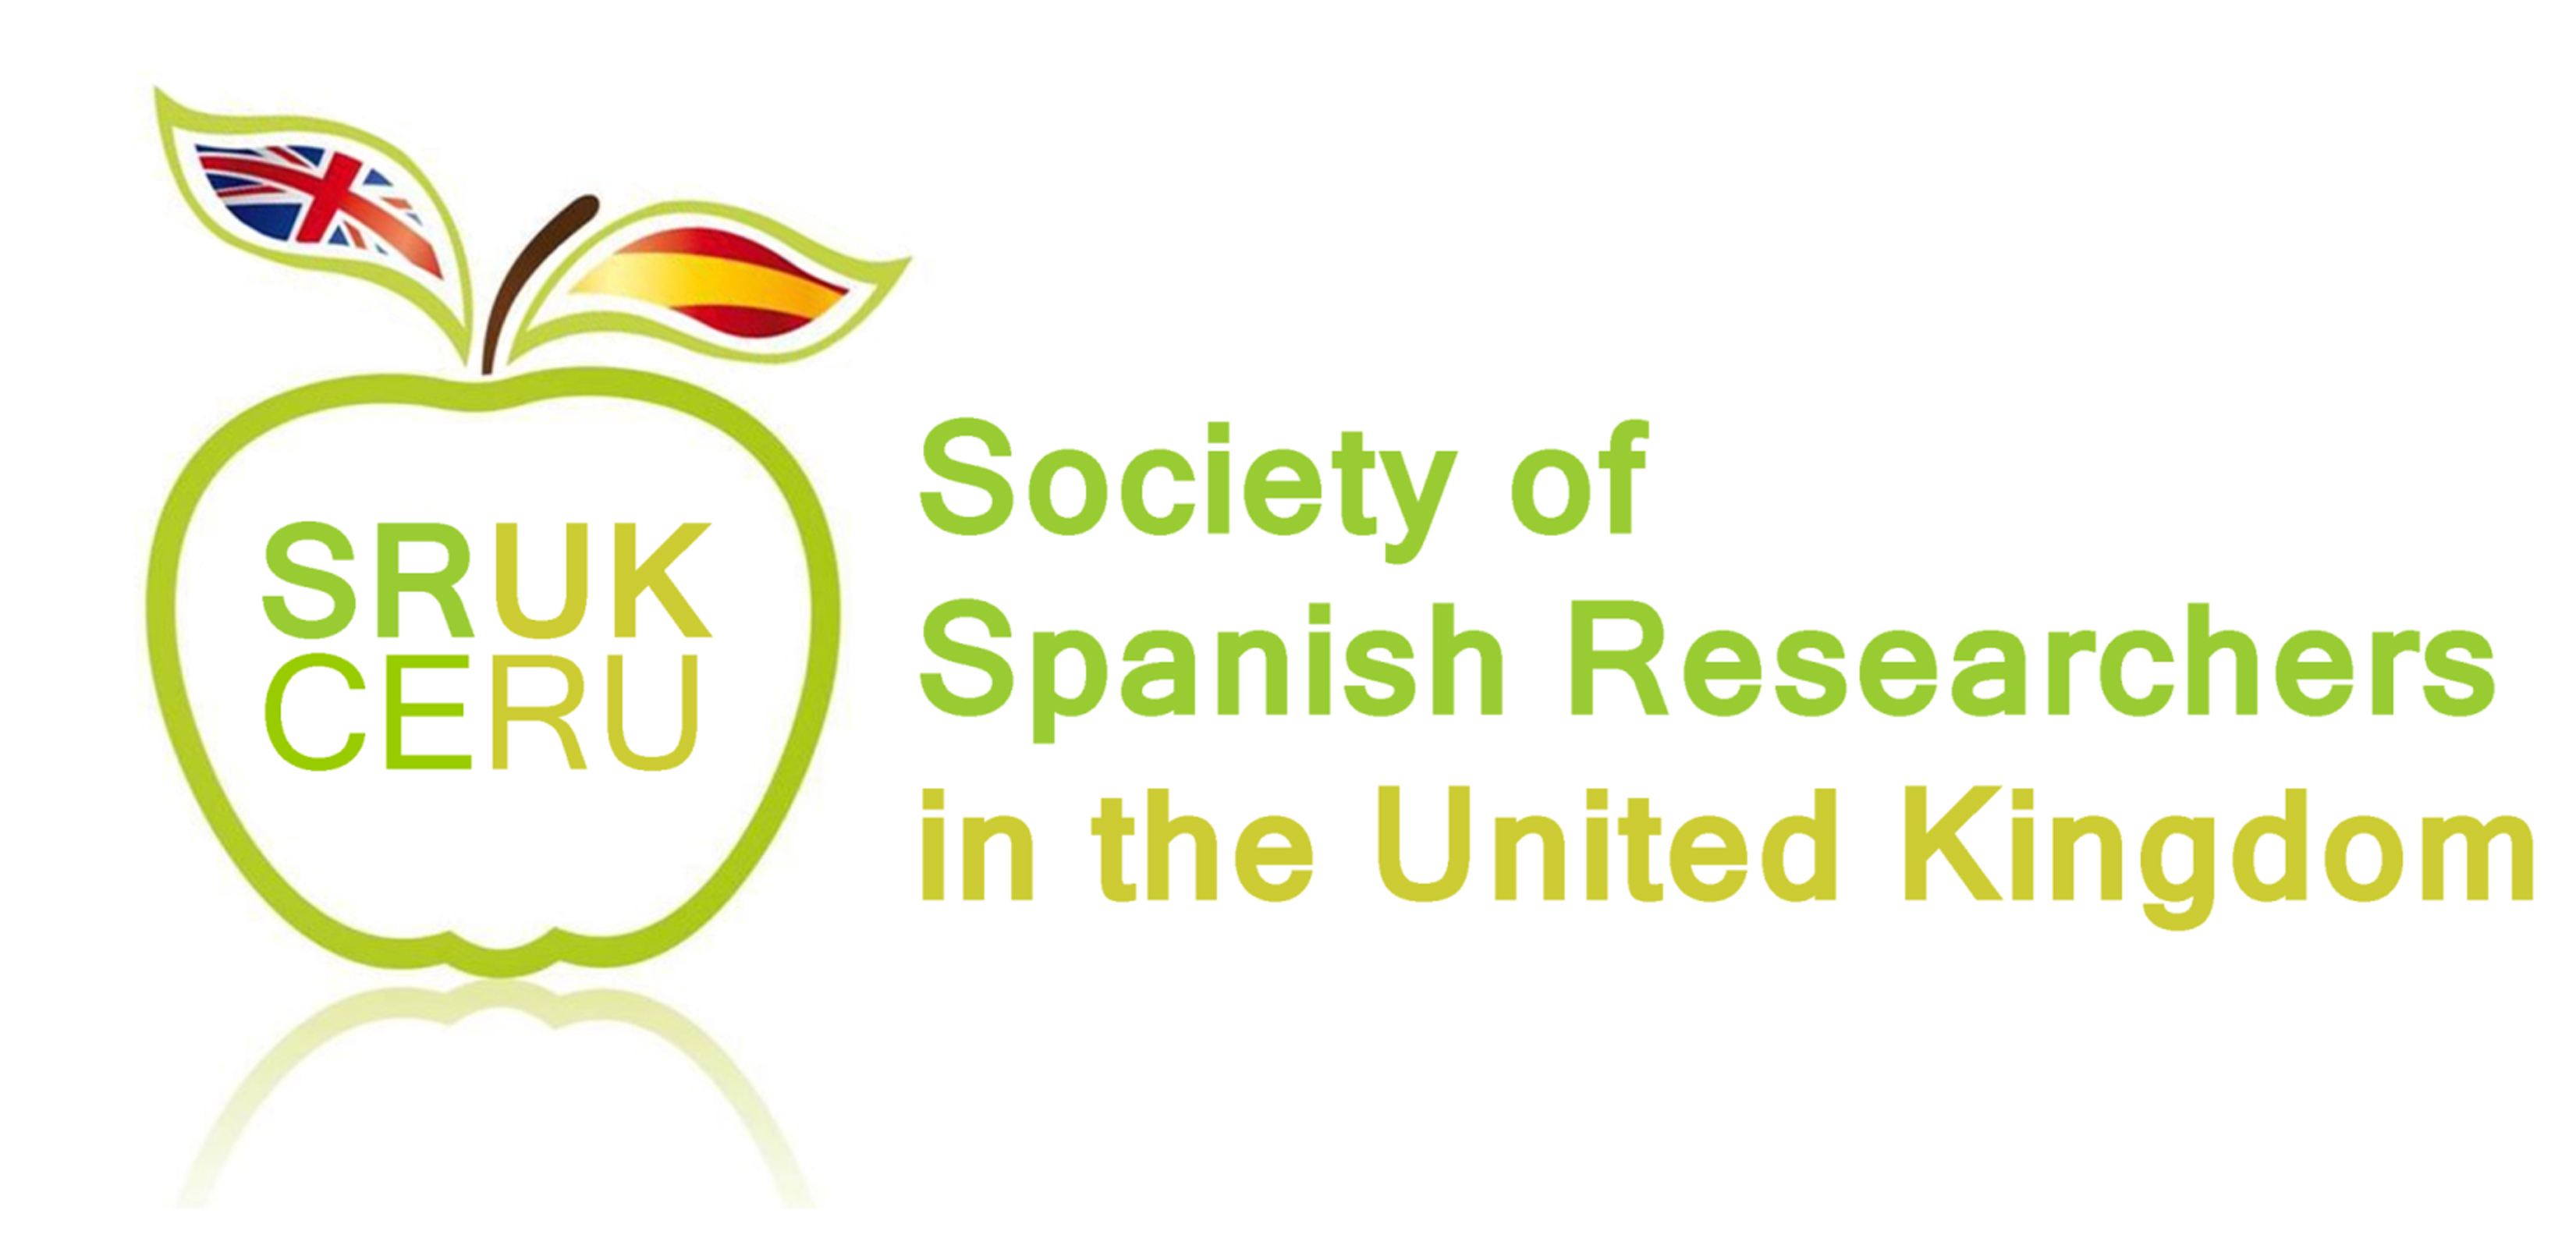 Spanish Researchers in the UK